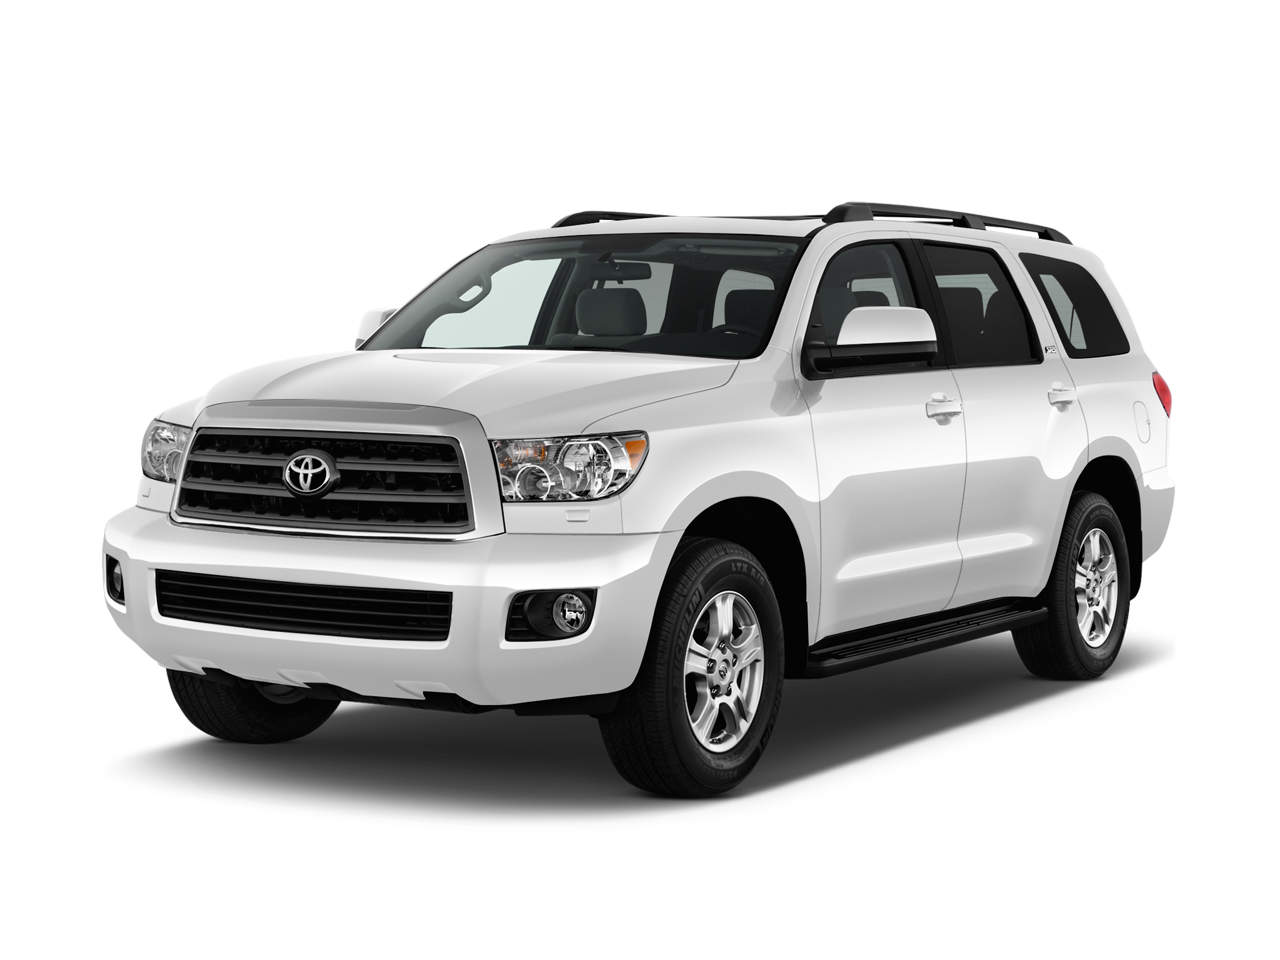 new 2017 toyota sequoia sr5 near herculaneum mo twin. Black Bedroom Furniture Sets. Home Design Ideas